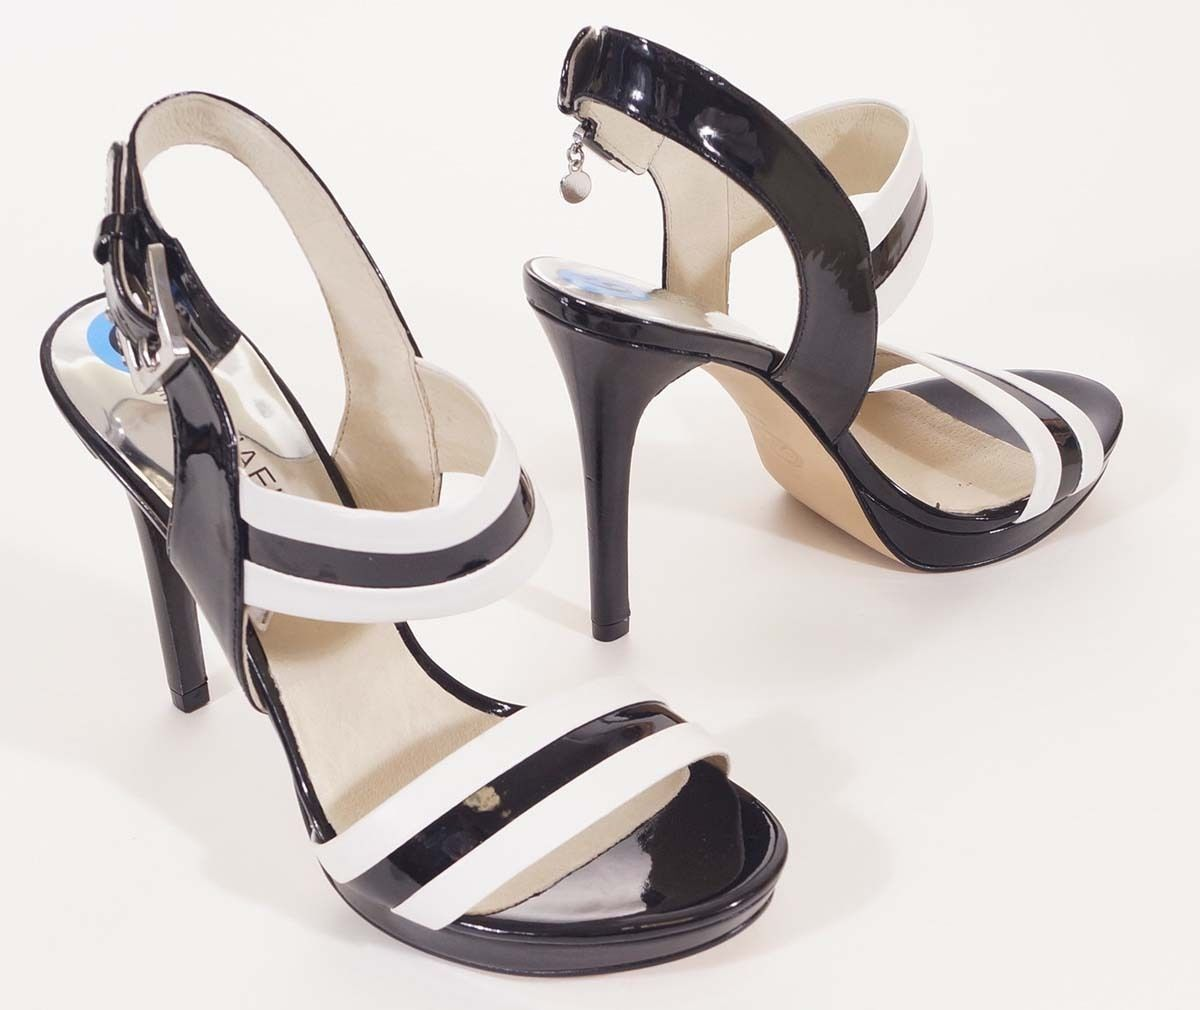 Michael Kors Womens Black White Patent Leather Ankle Strap Sandals Heels Shoes